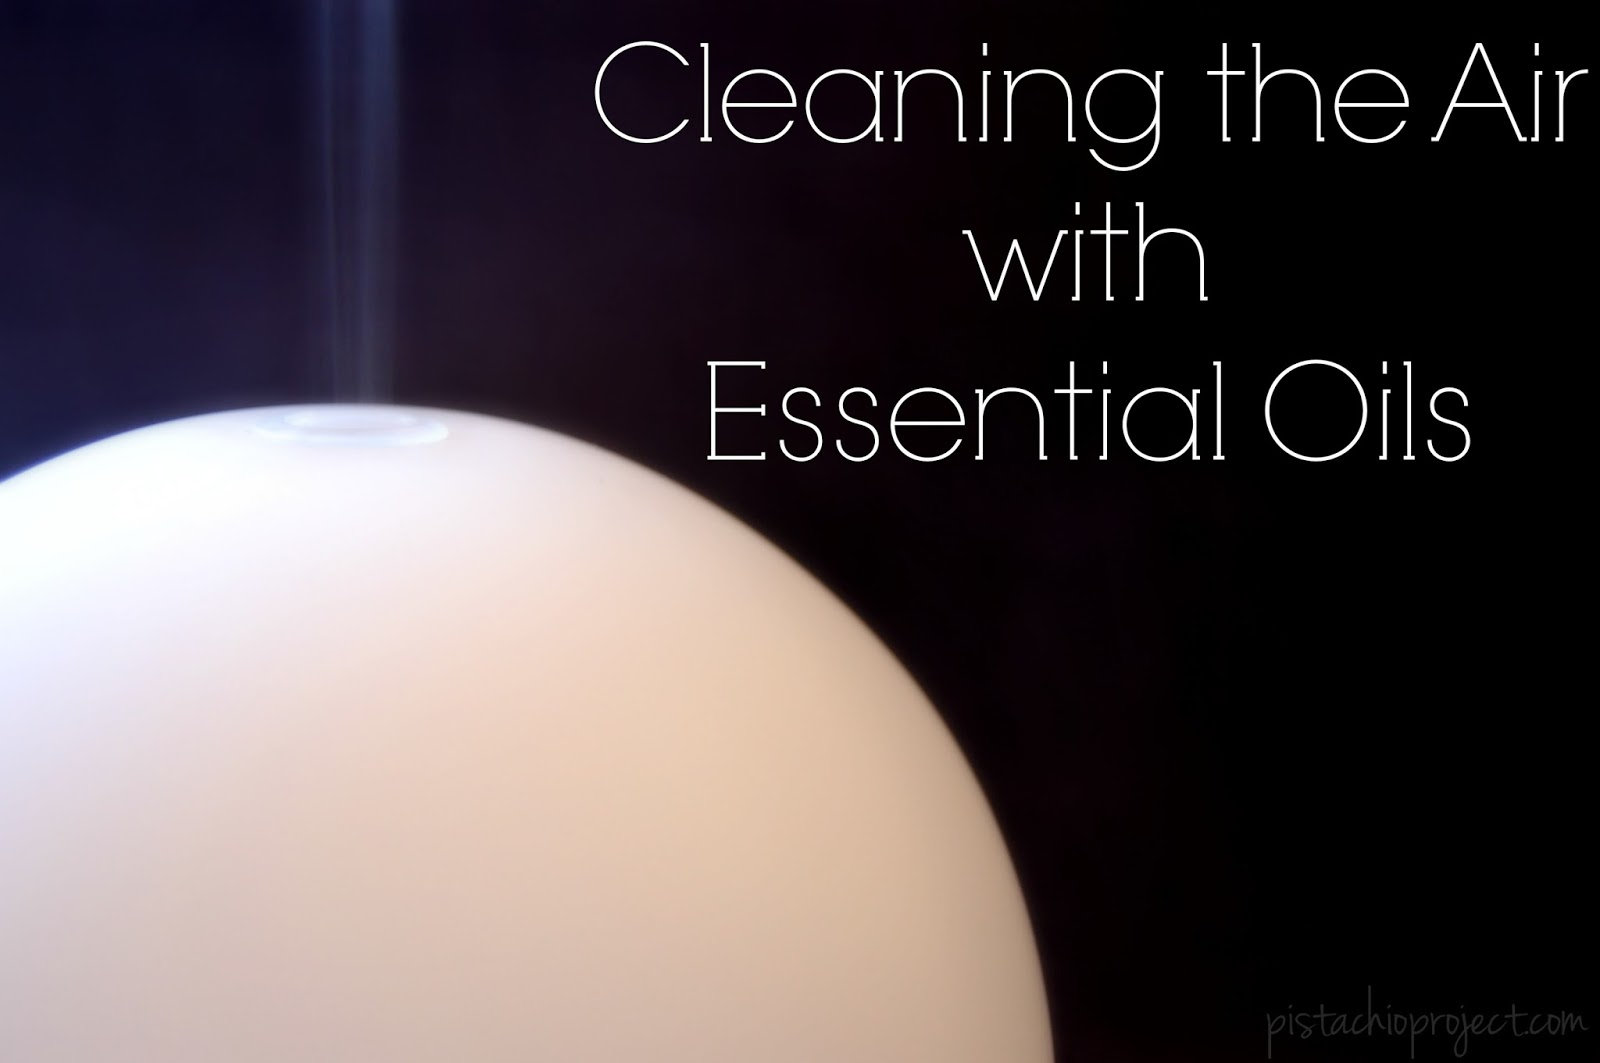 Clean the Air with Essential Oils